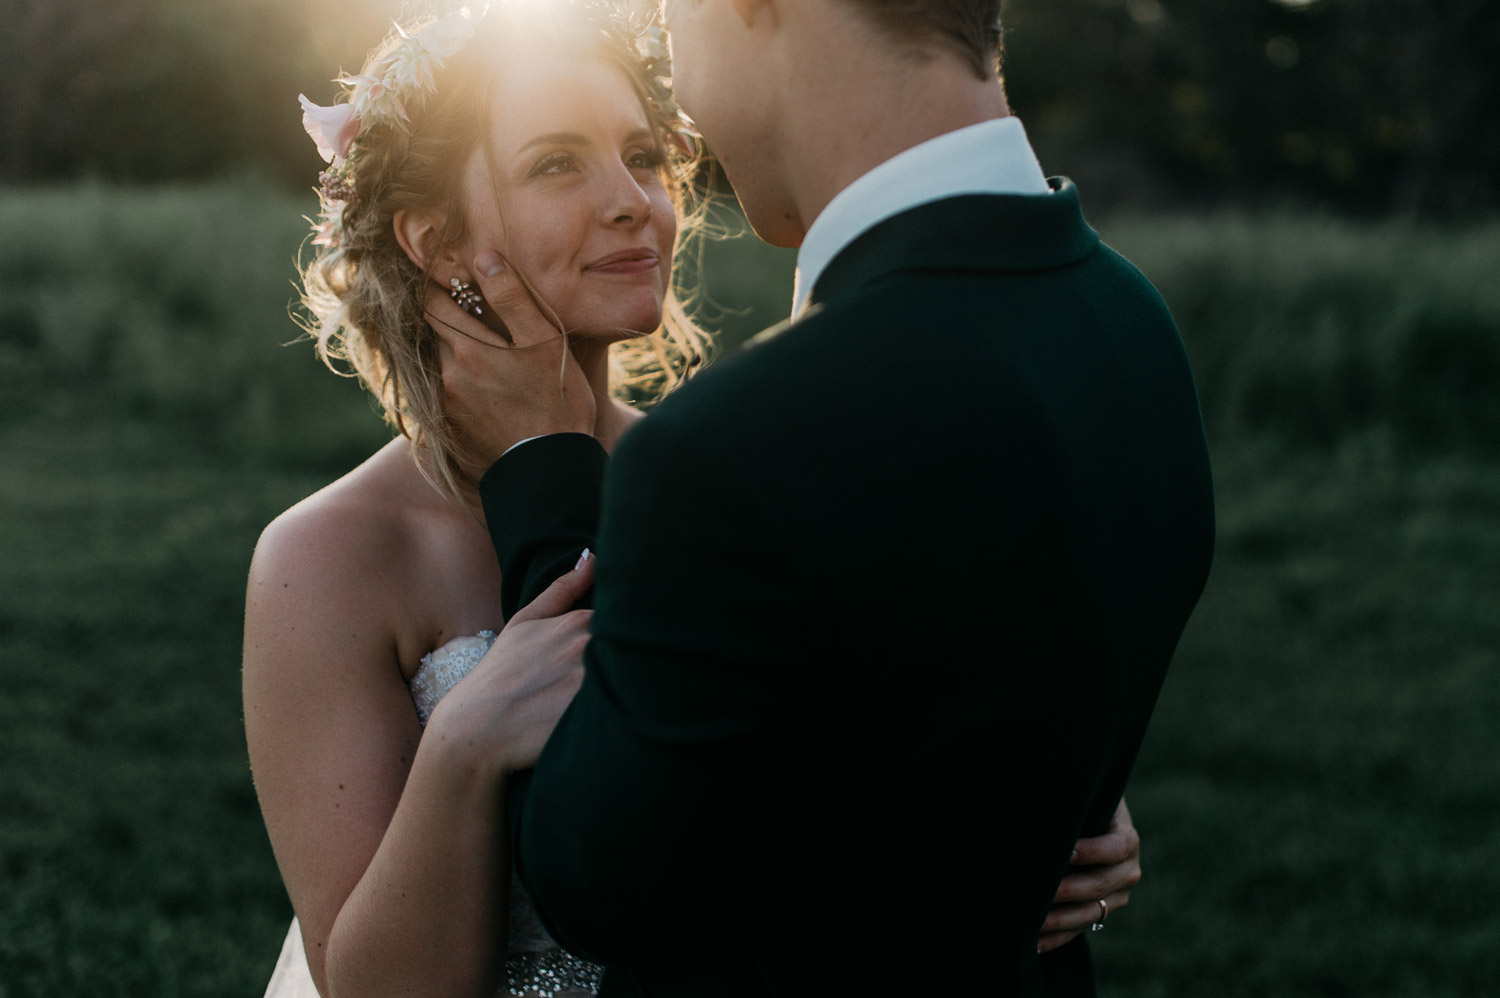 Sunset Bride and Groom Portraits by geneoh photography